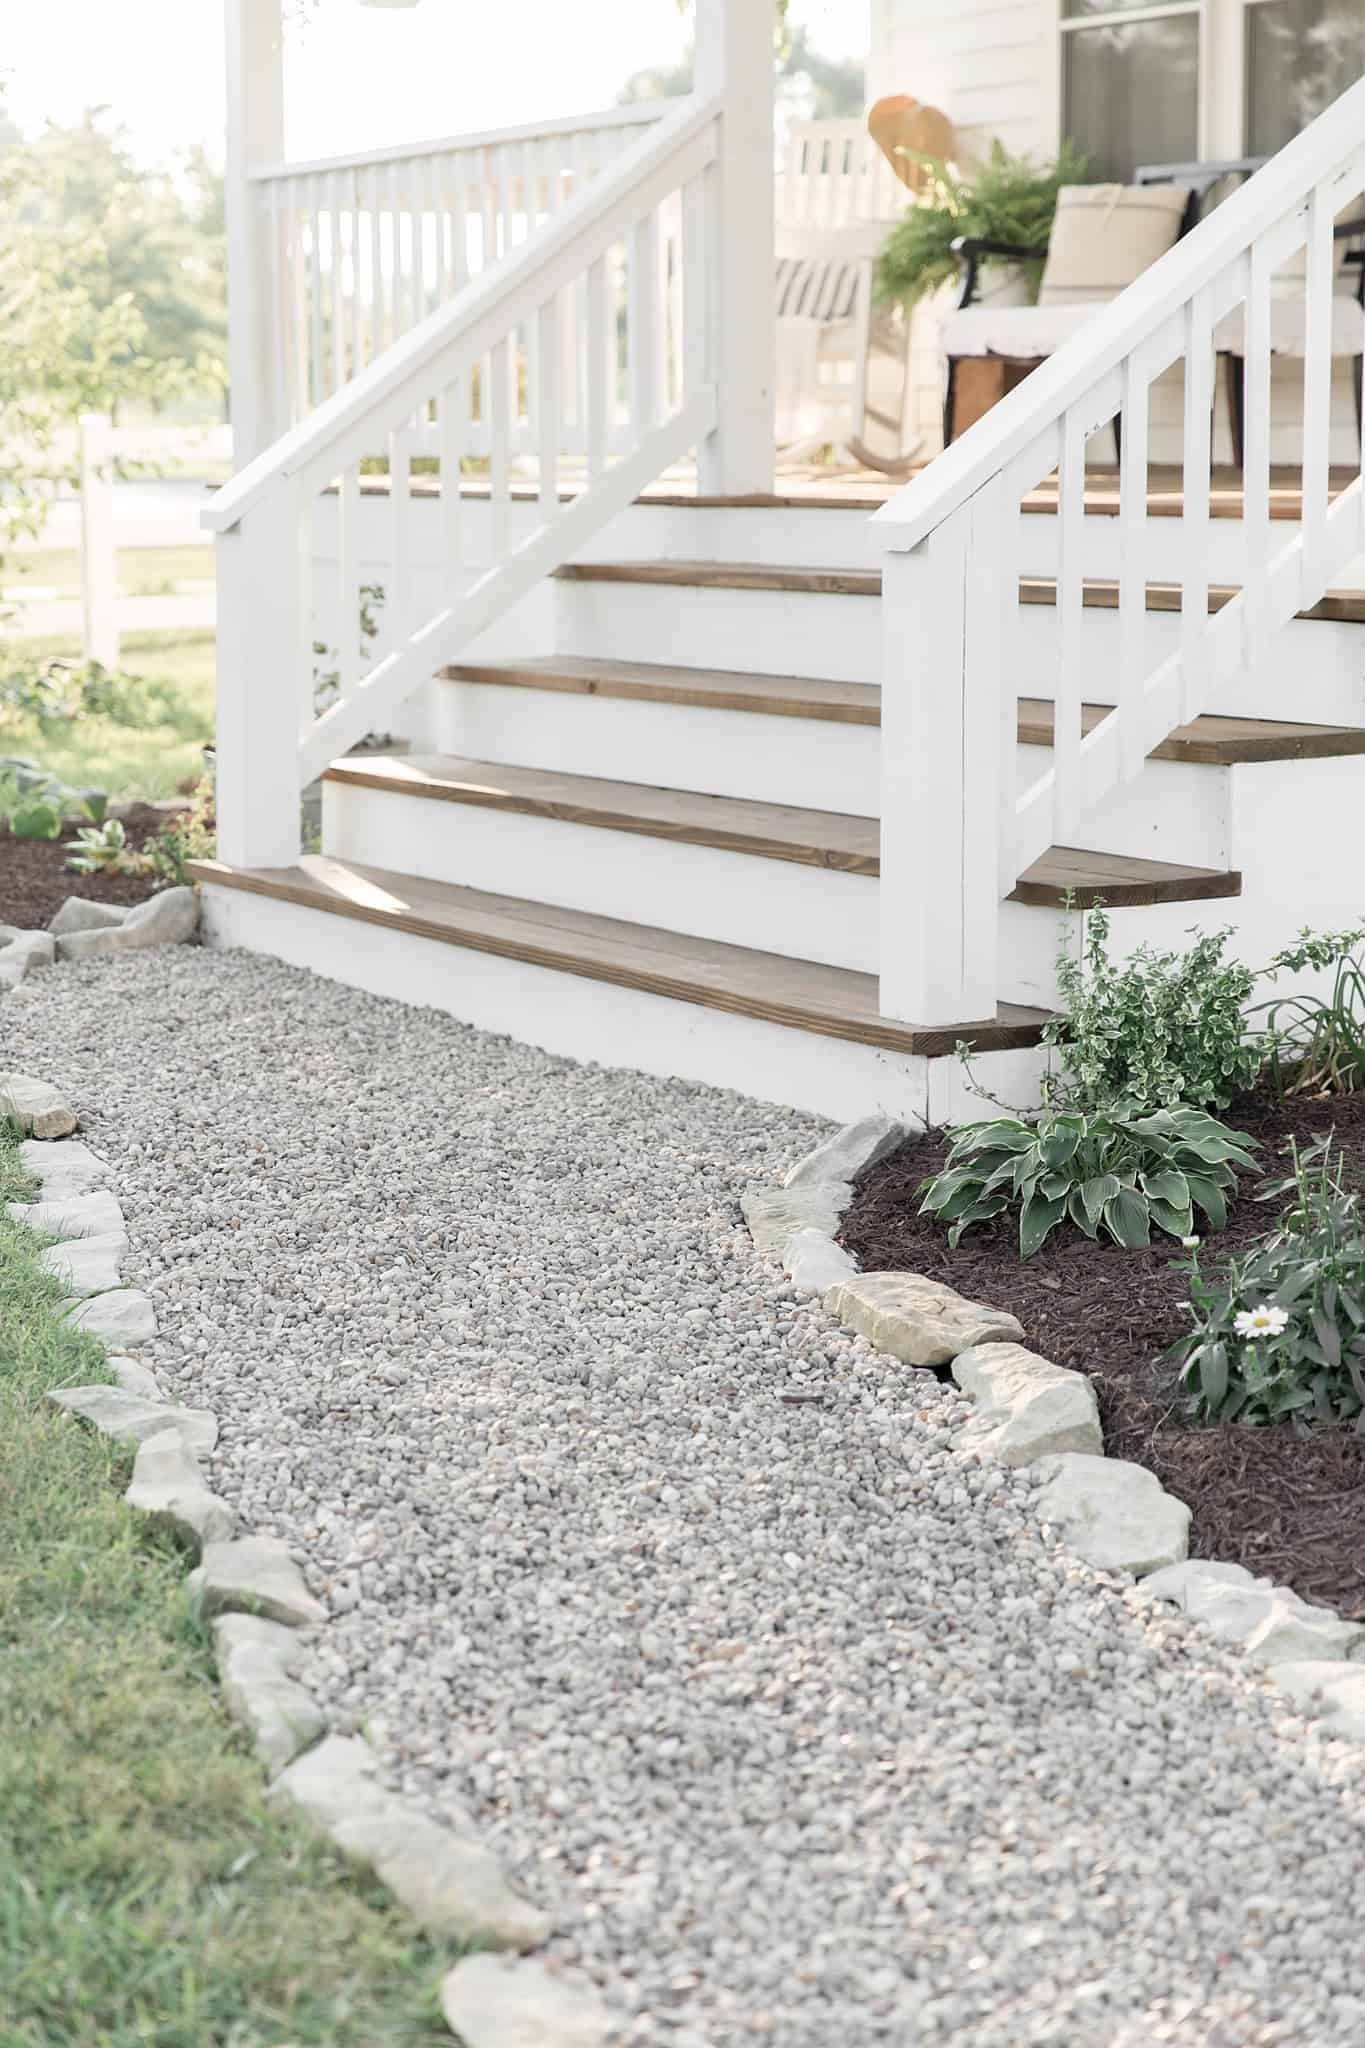 How To Cover Concrete Steps With Wood Farmhouse On Boone | Replacing Concrete Steps With Wood | Stringers | Stair Railing | Composite Decking | Pouring Concrete | Concrete Slab